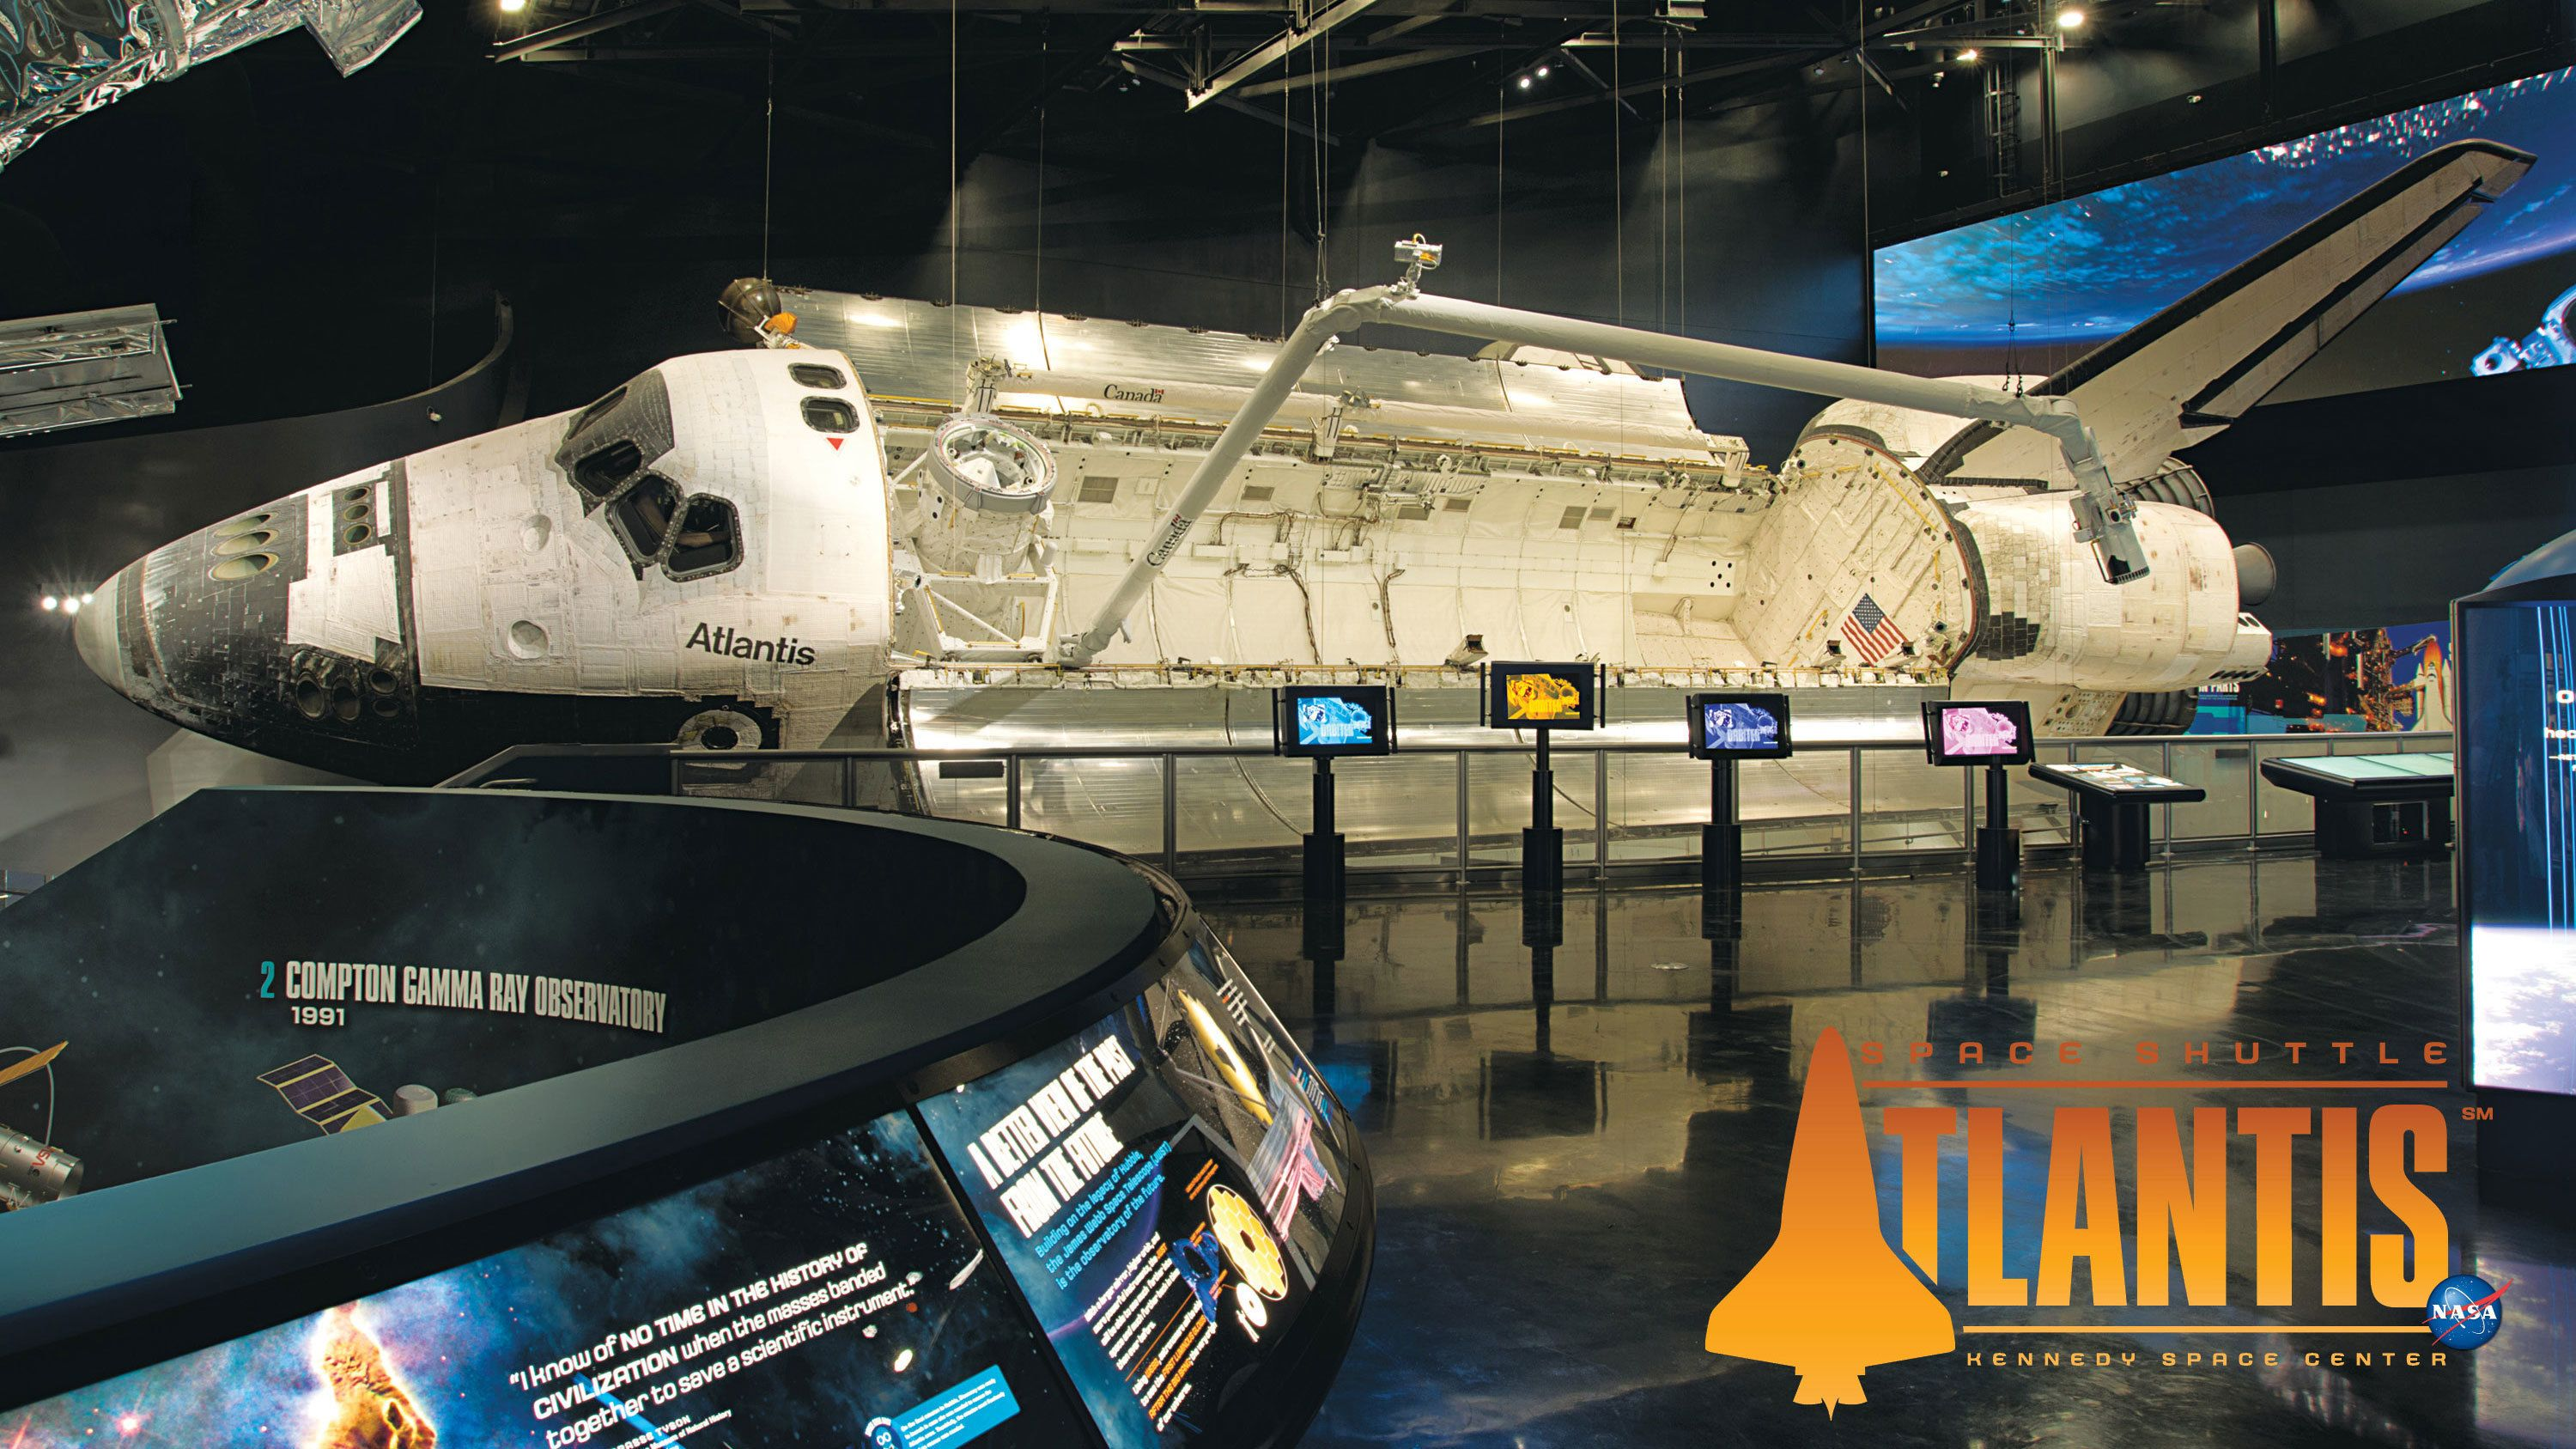 Space Shuttle Atlantis at the Kennedy Space Center in Orlando.